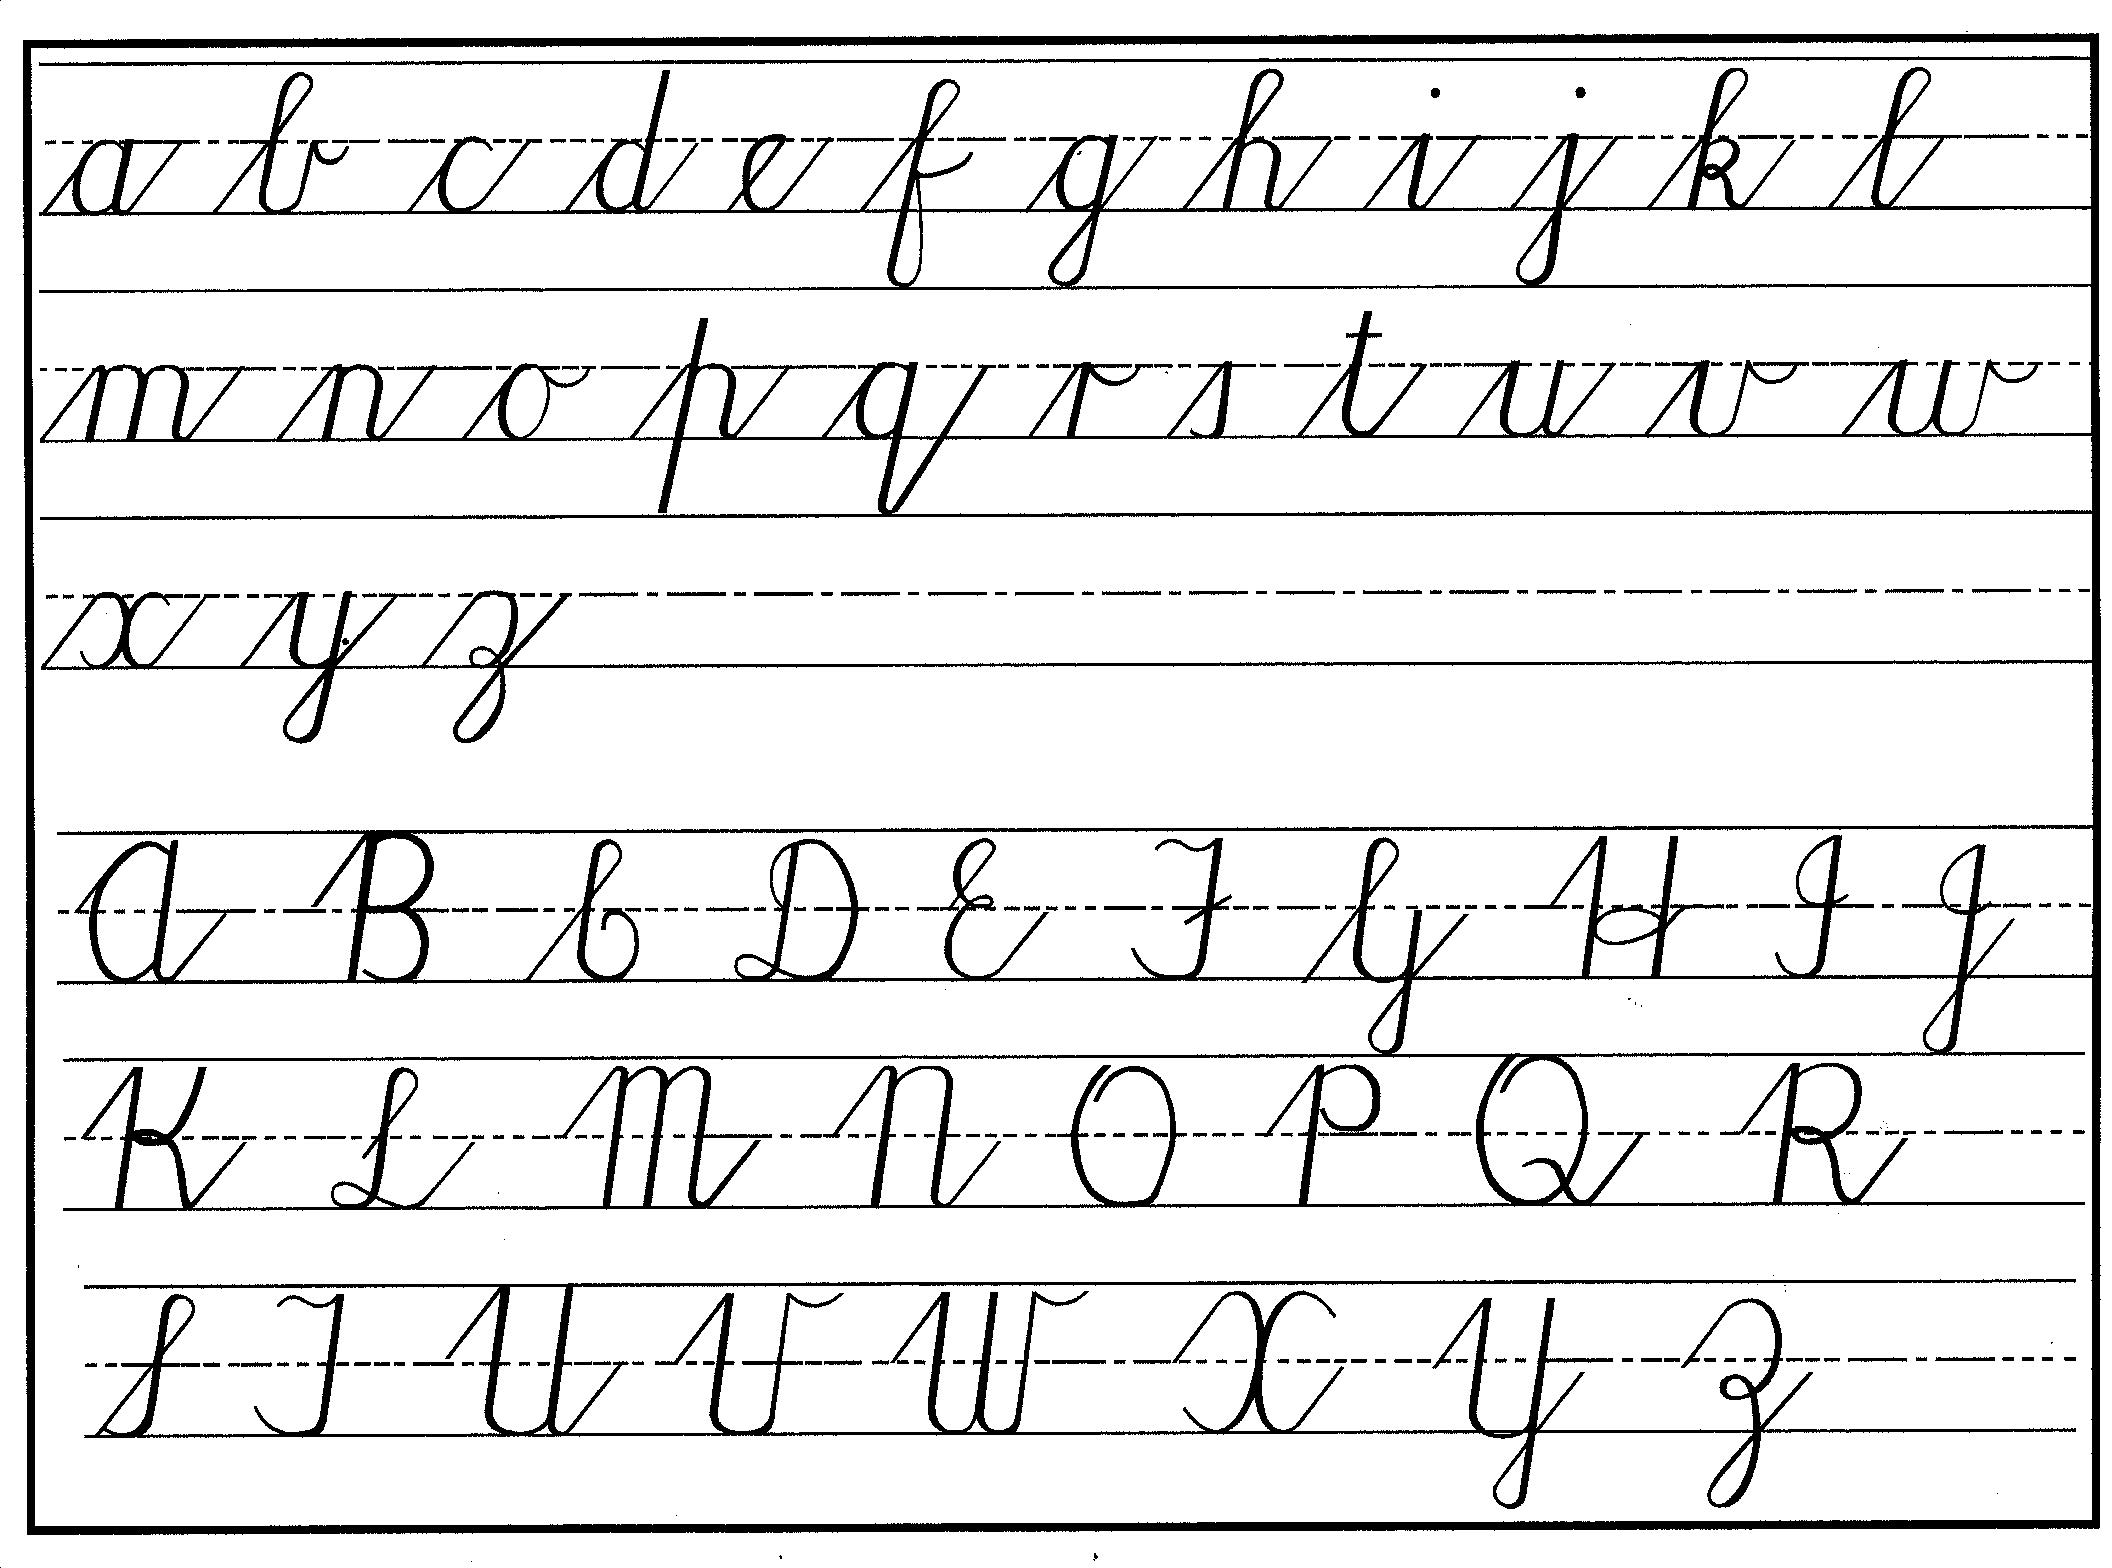 Worksheet Alphabets In Cursive Writing cursive handwriting step by for beginners practical pages we use laminated charts instead of books or programs